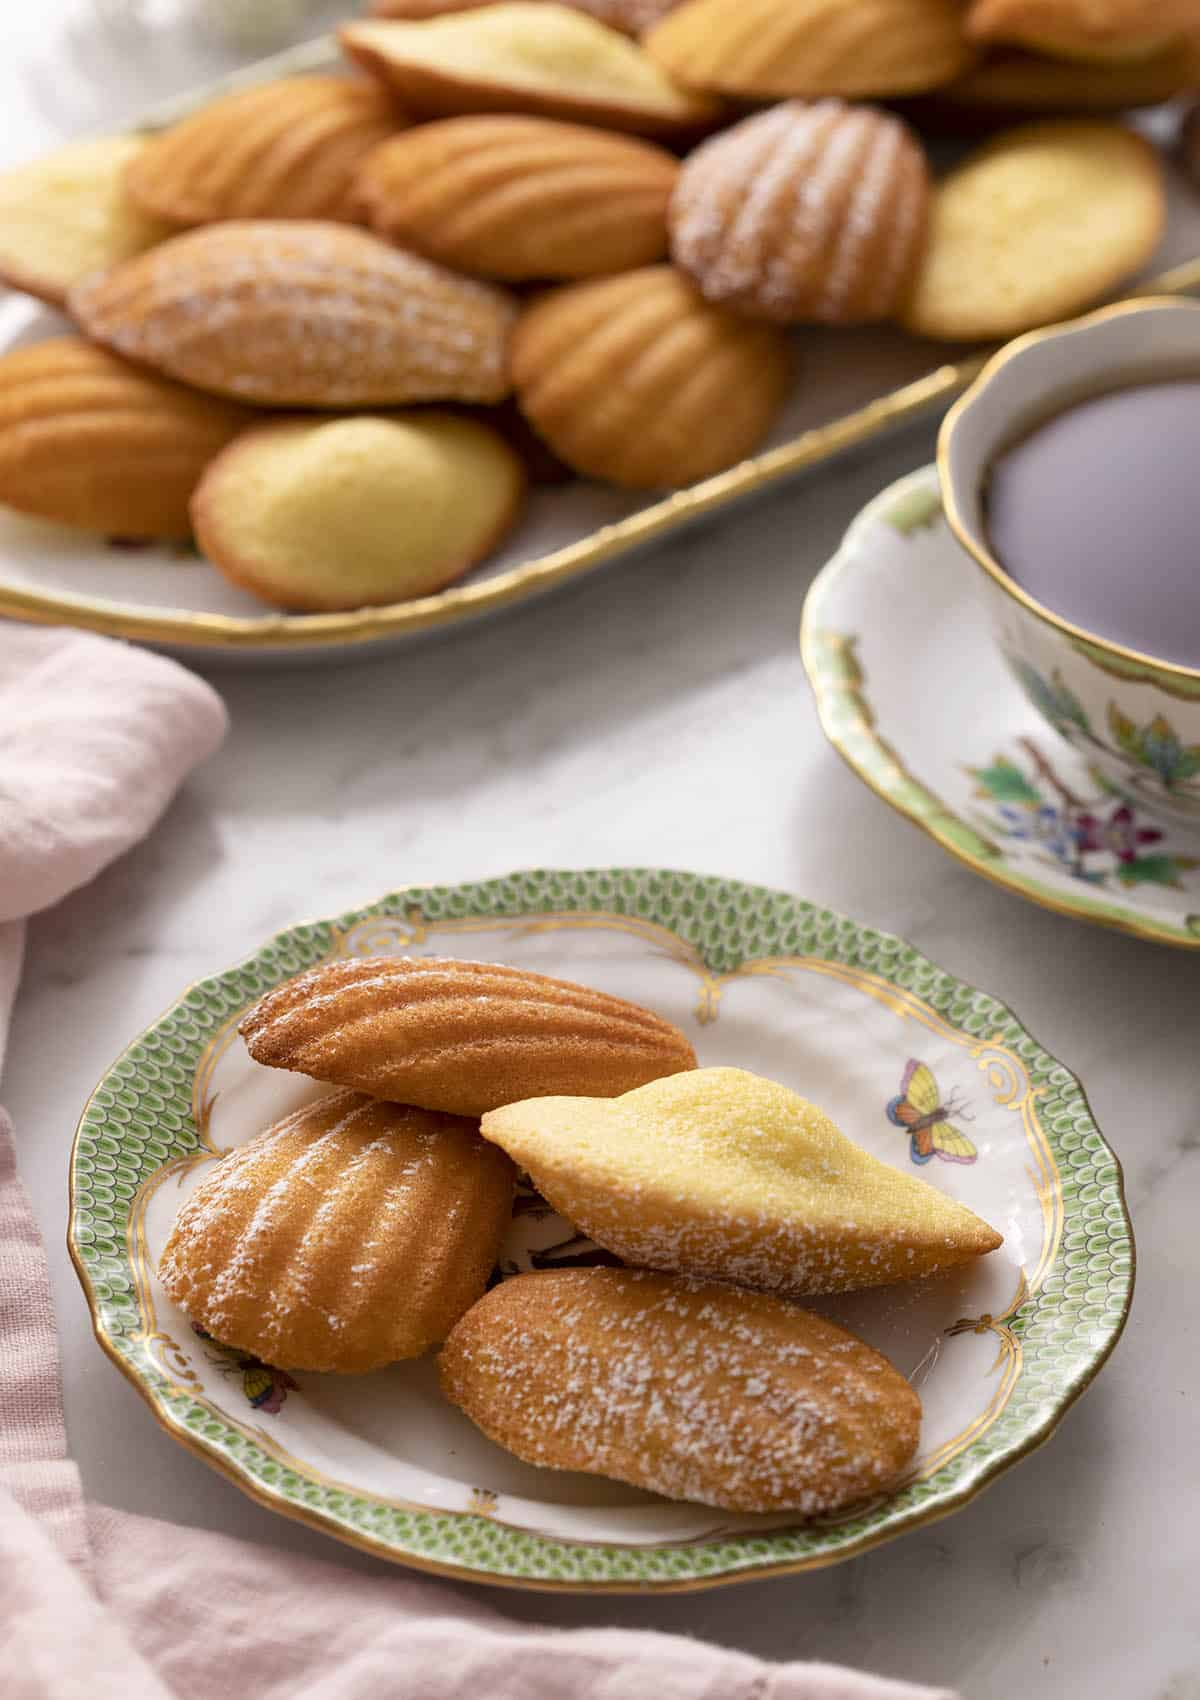 A green and white plate with Madeleines on a marble counter.